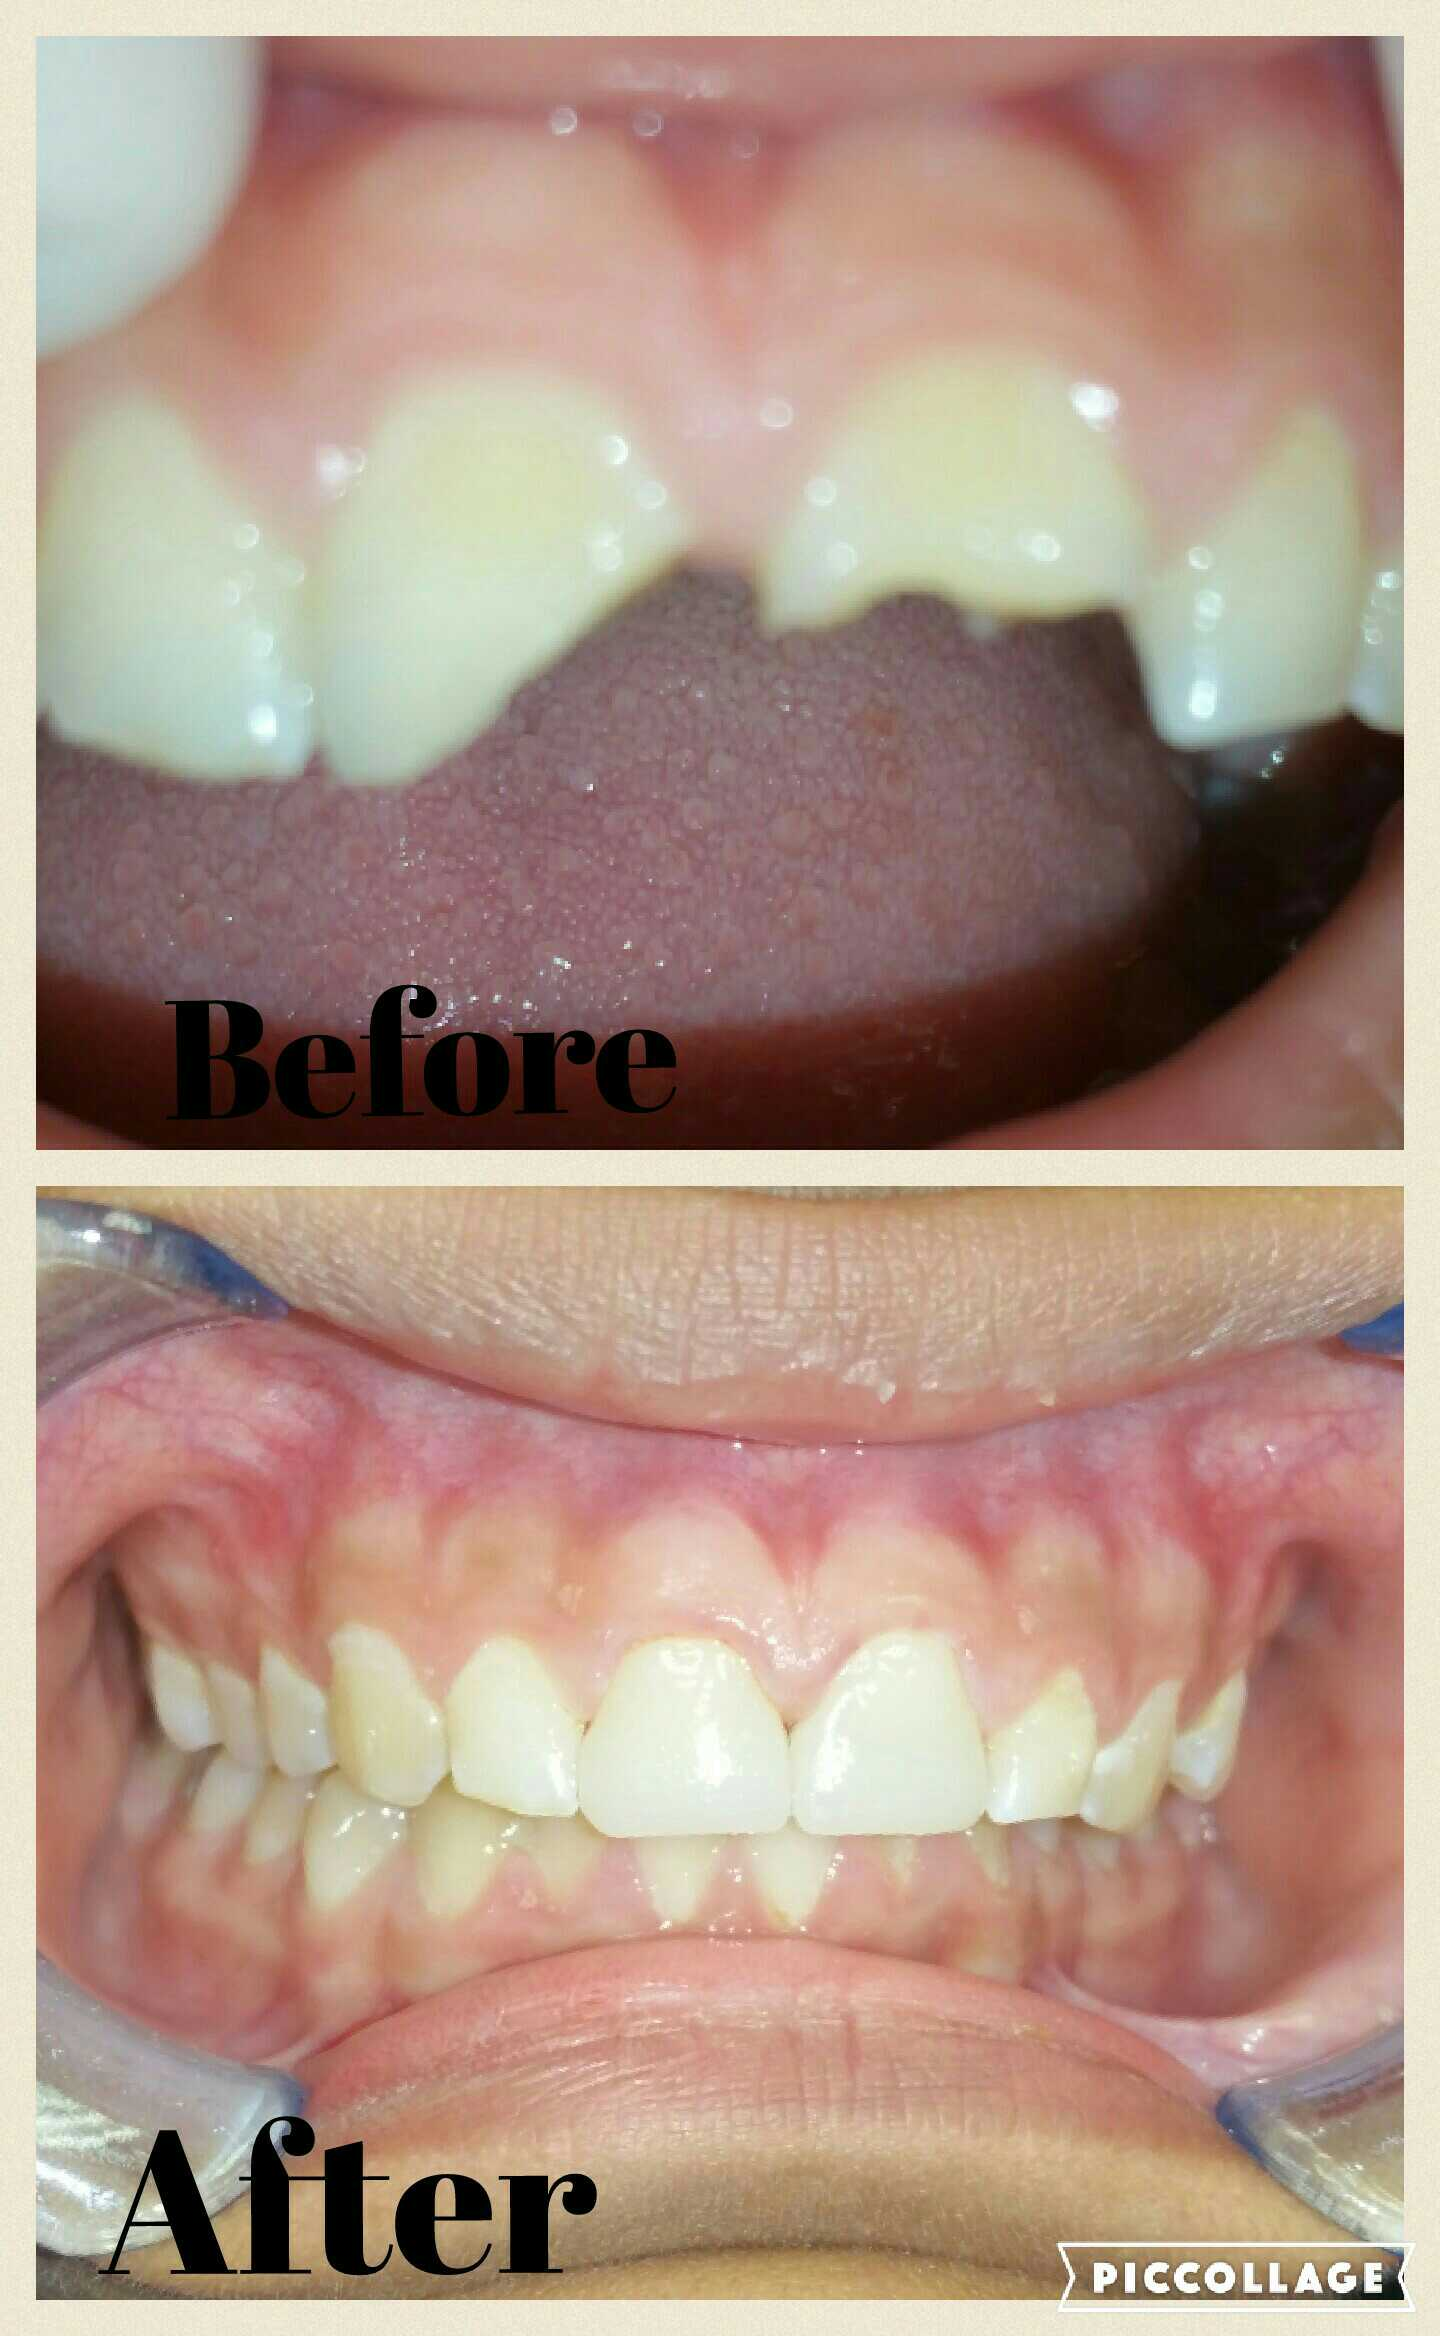 Catherine Irasusta, DMD has a variety of options when it comes to cosmetic dentistry.